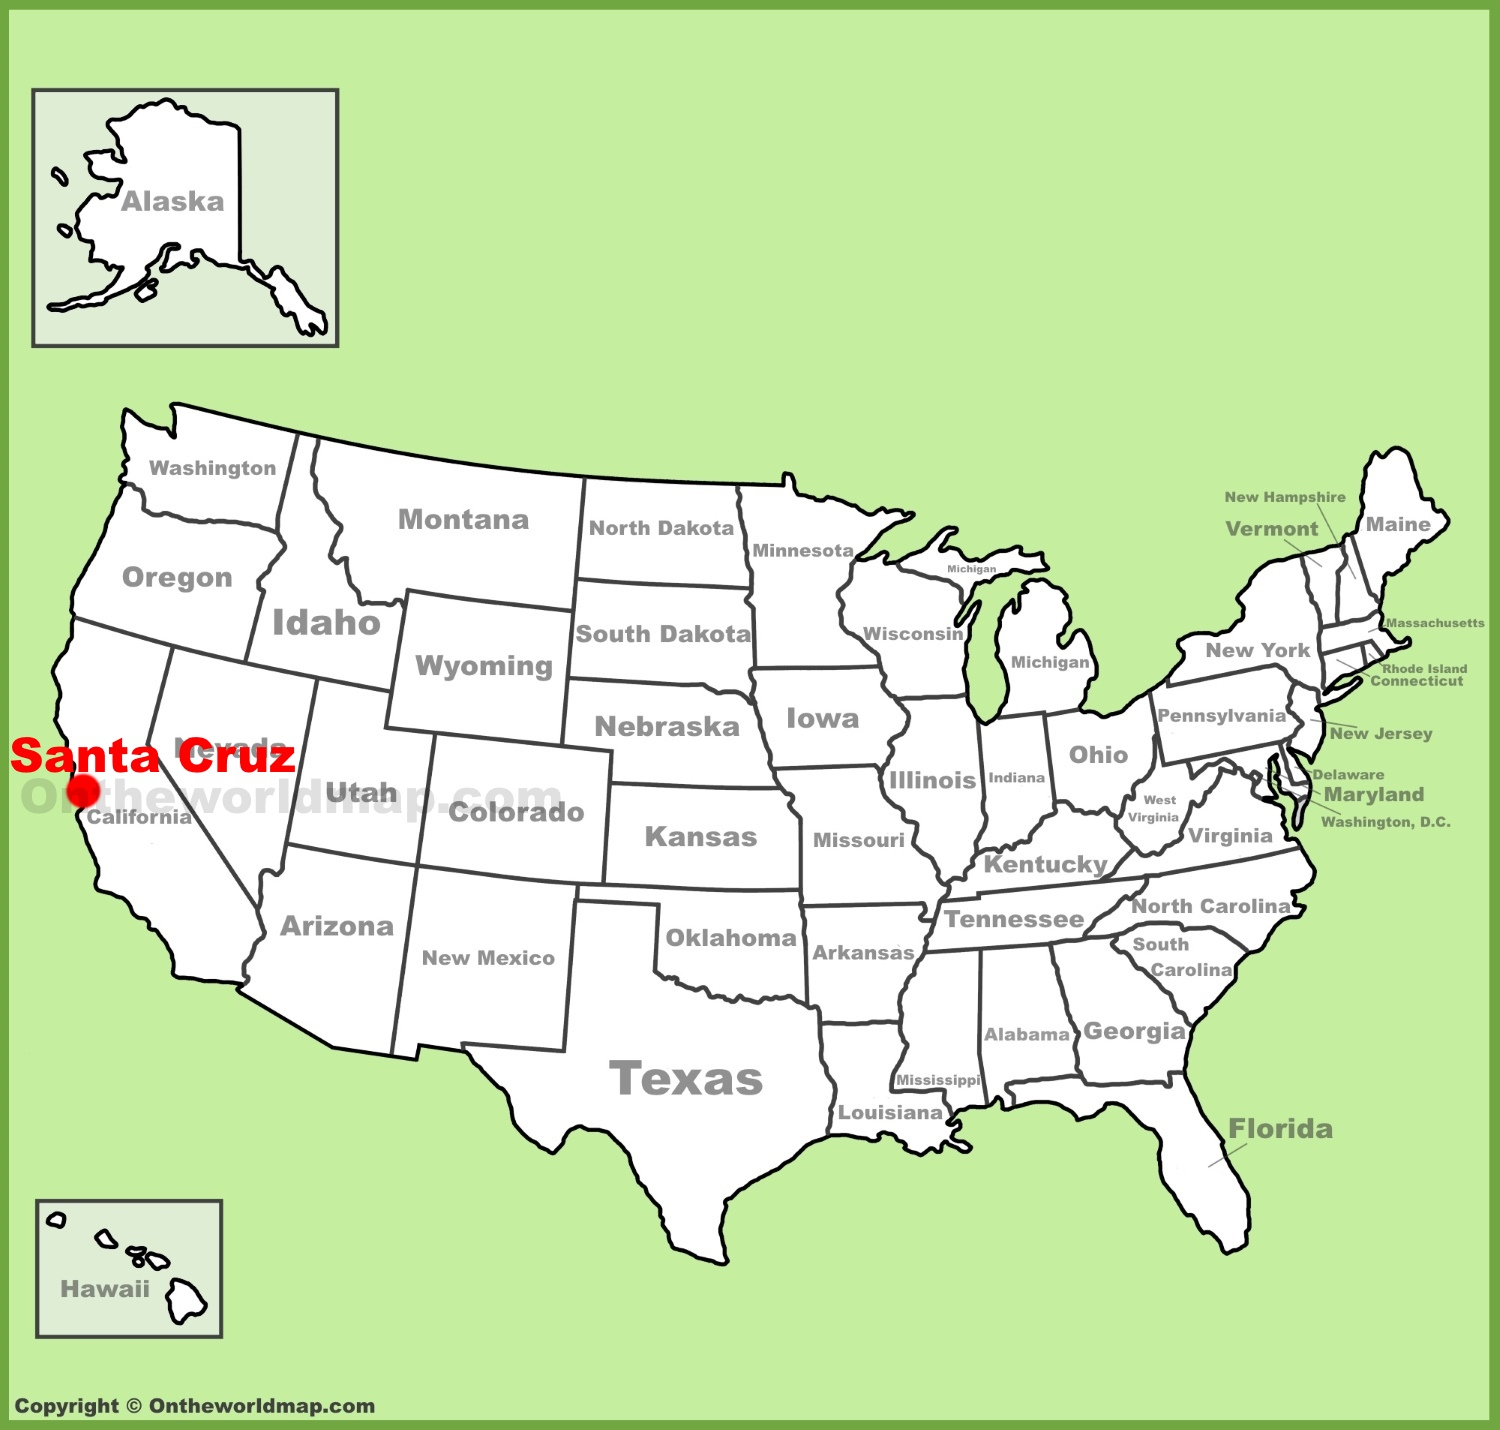 Santa Cruz Location On The U.s. Map - Where Is Santa Cruz California On The Map